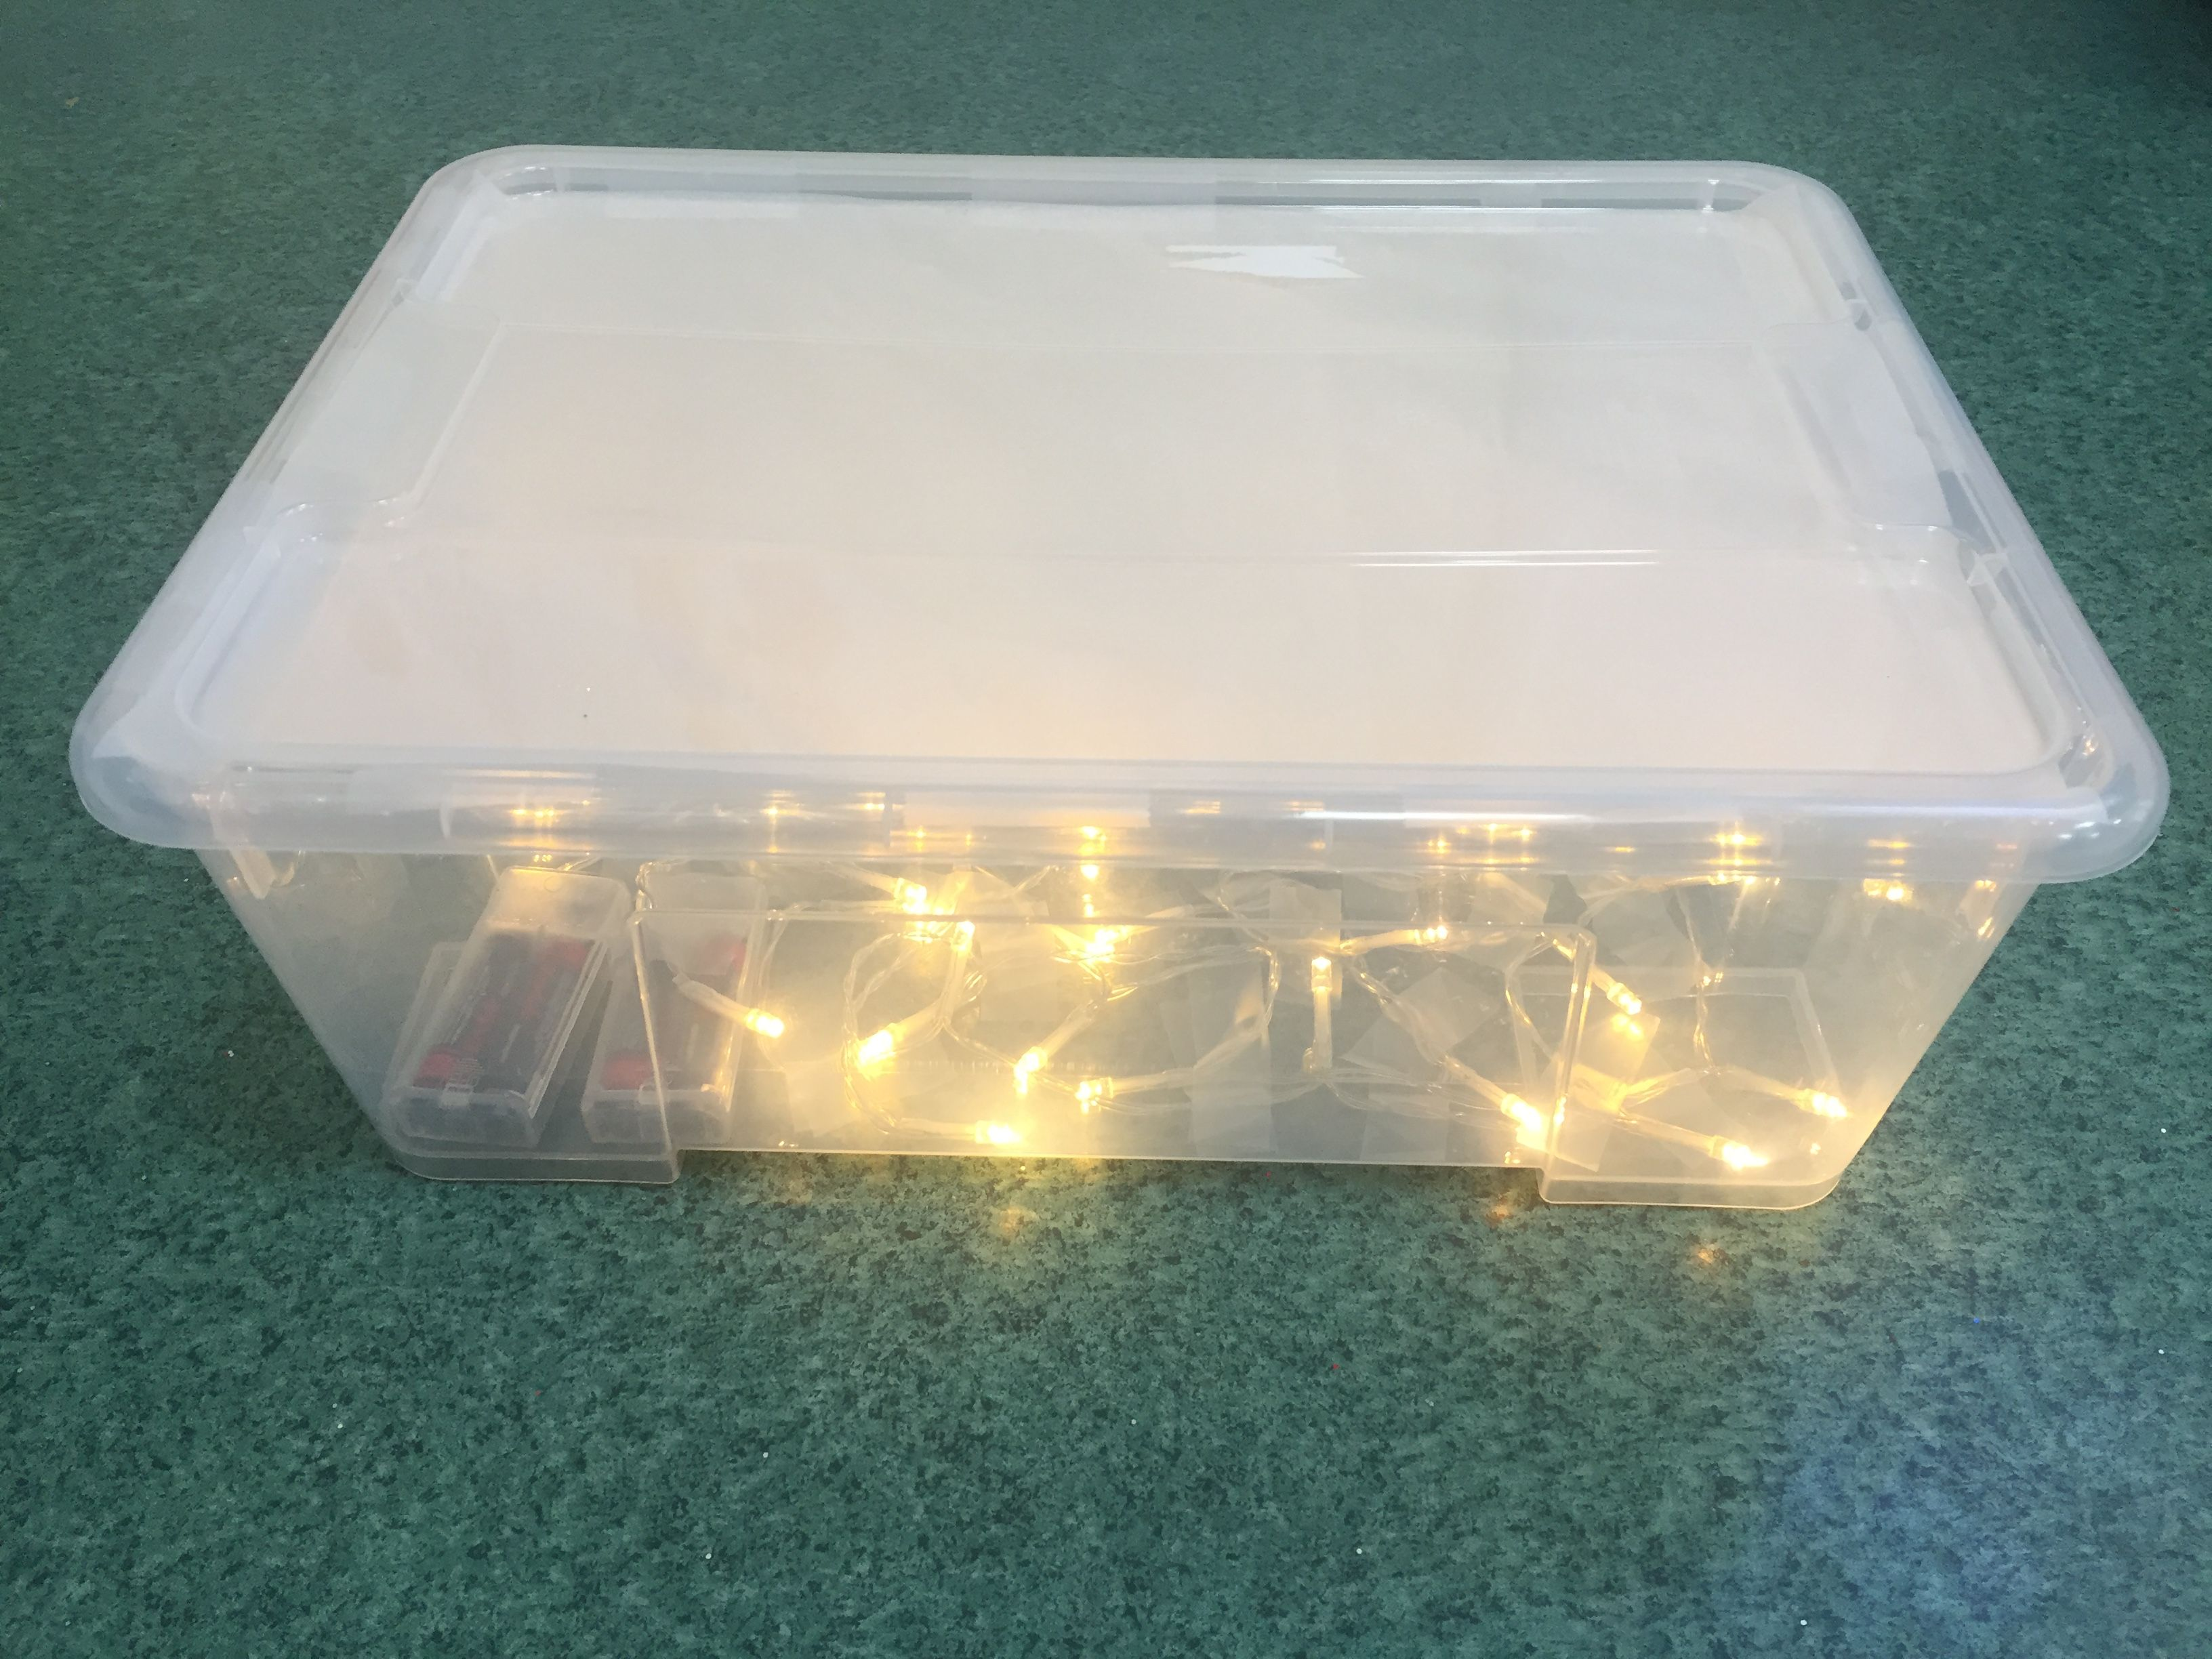 Diy Light Box For Children With Additional Needs Using A